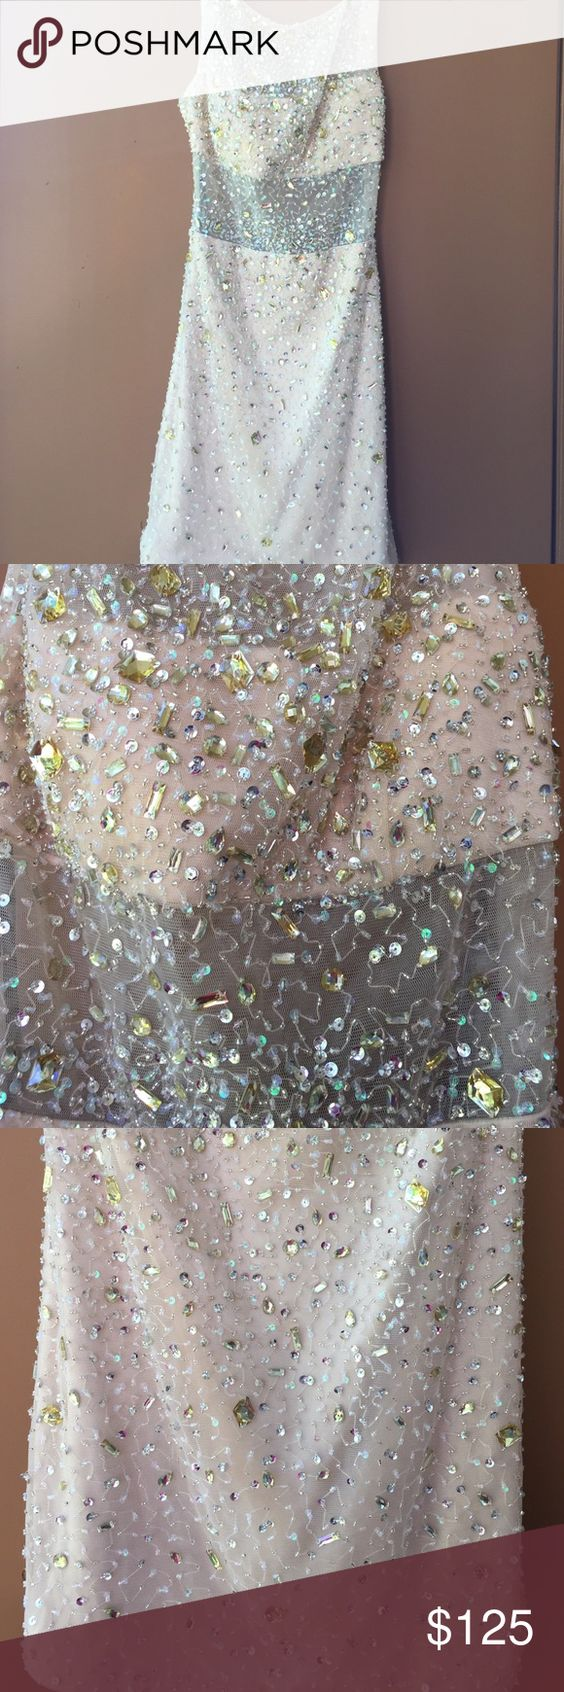 Bling-wow! Crystal-studded cocktail dress This is an eye-catcher. Don't know wear if you don't like attention. This dress comes fully embellished with rhinestones, crystals and sequins. A bling wow statement. Perfect for any birthday celebration, wedding or New Years Eve party! bebe Dresses Backless